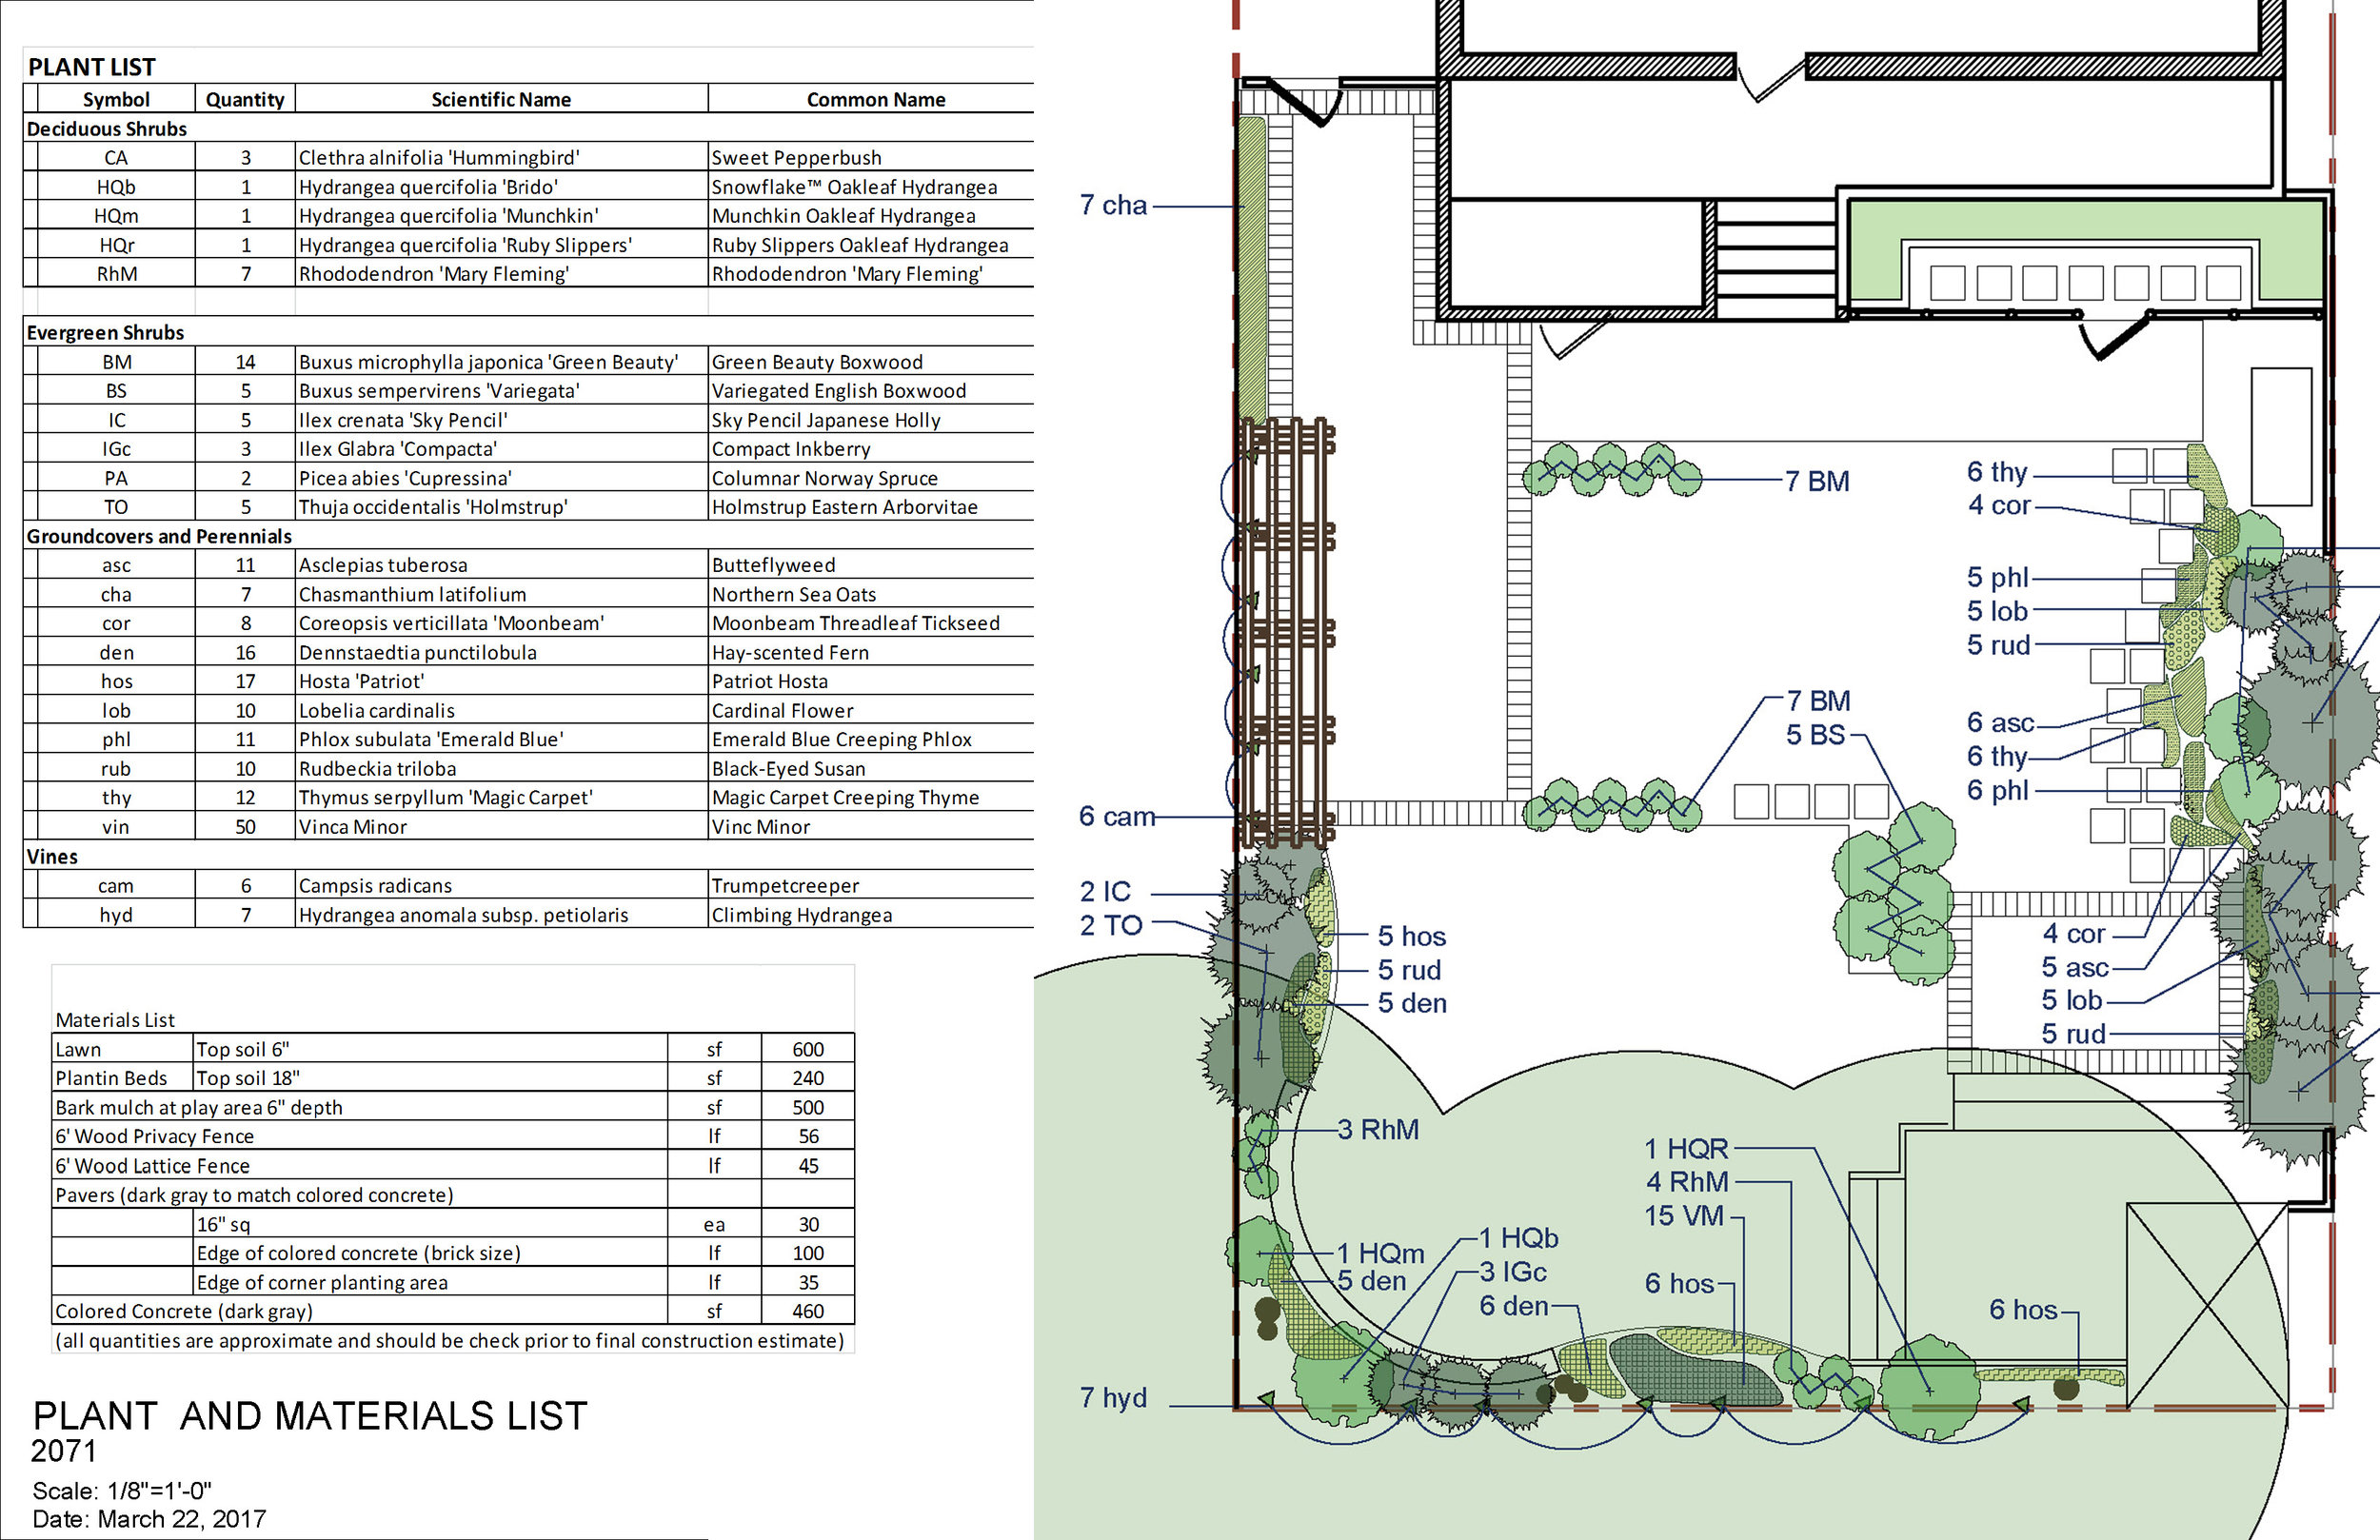 Specification of Plan Material and Detailed Planting Plan